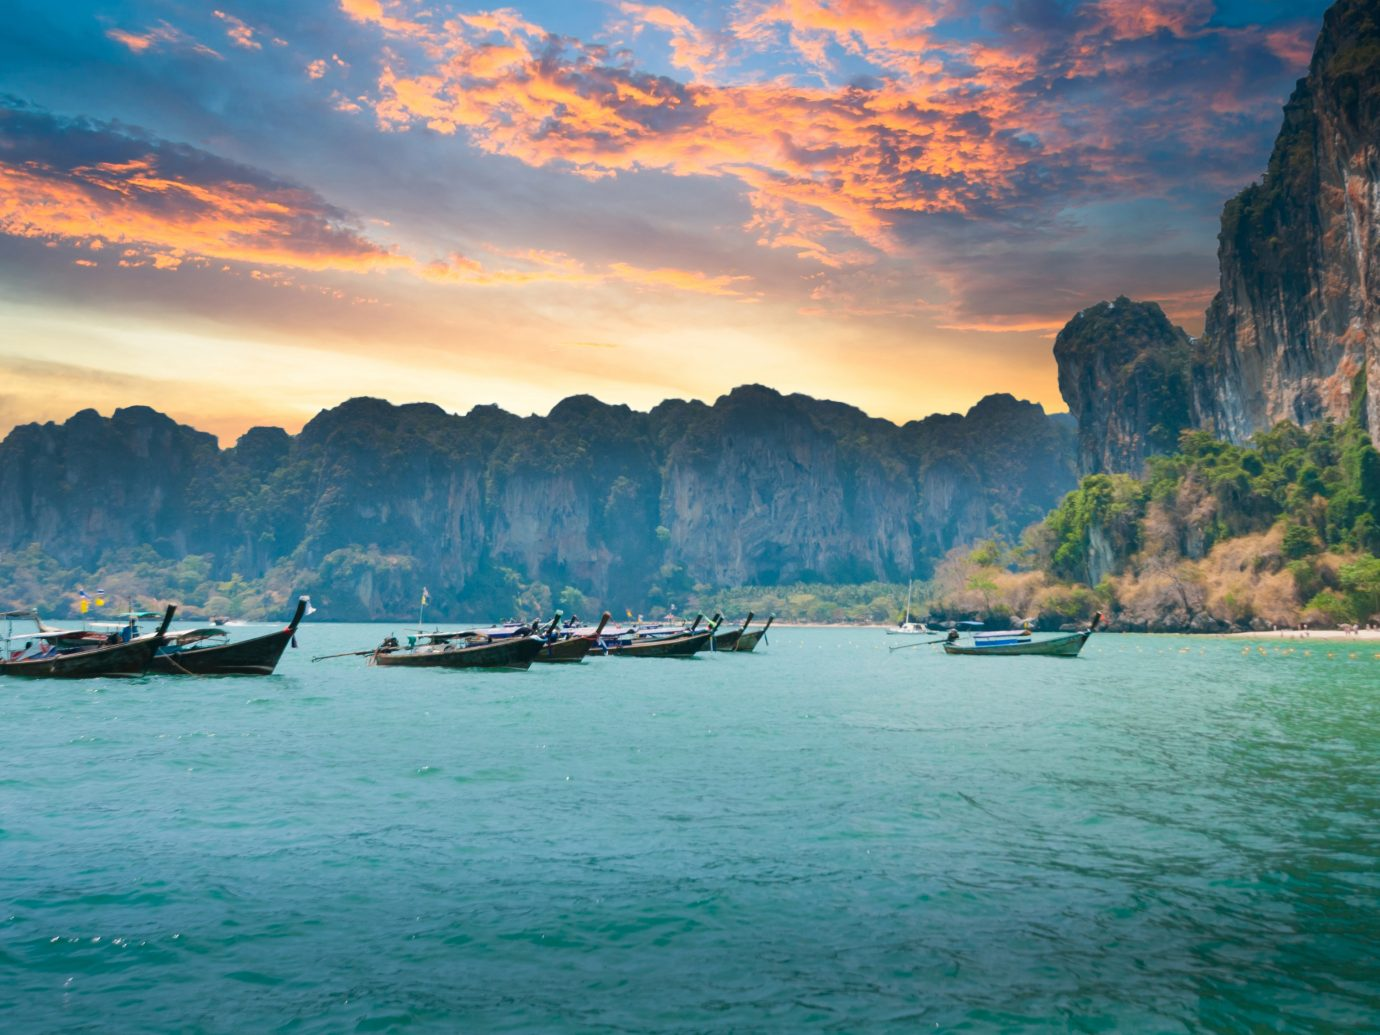 Beautiful sunset at tropical sea with long tail boat in south thailand